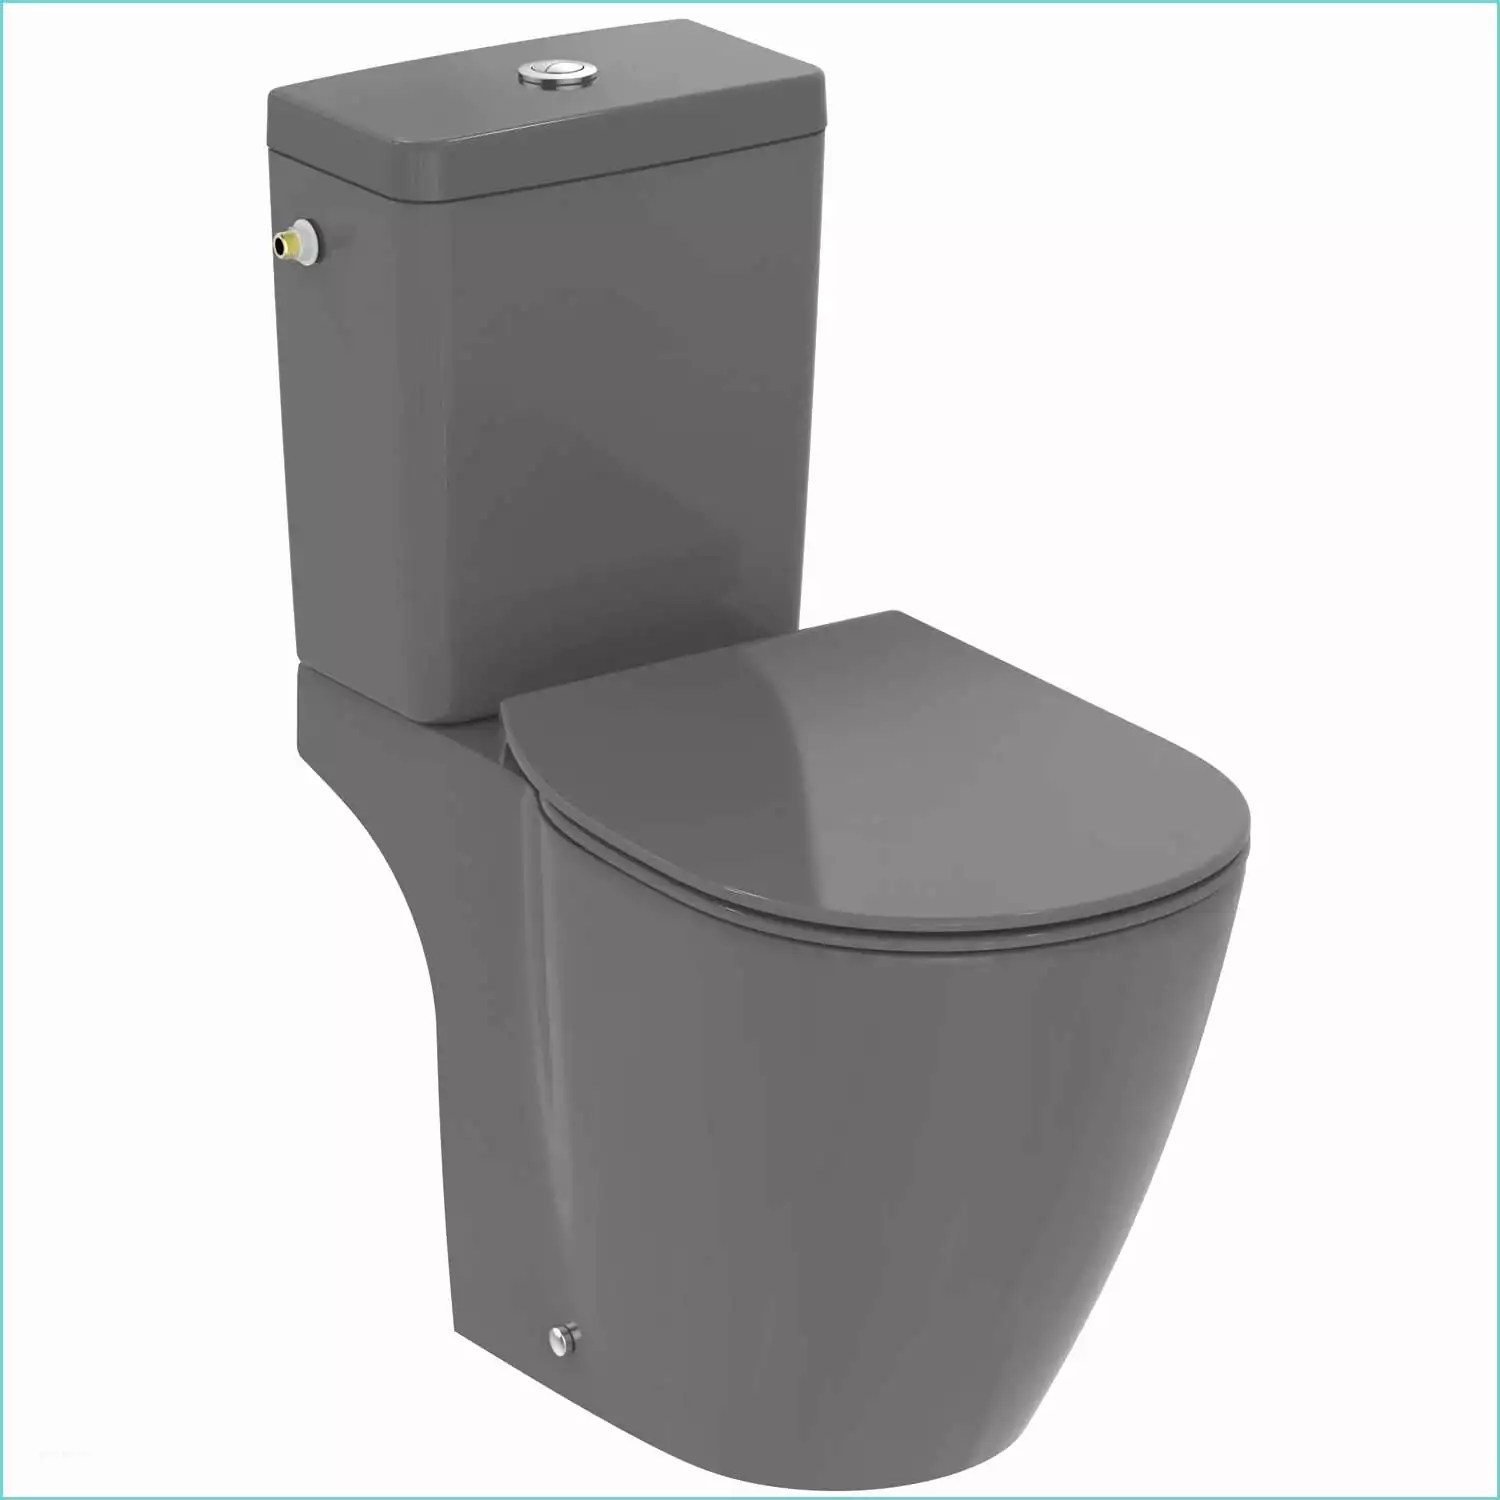 Wc Ideal Standard Leroy Merlin 45 Wc Lavabo Intgr Leroy Merlin Trendmetr